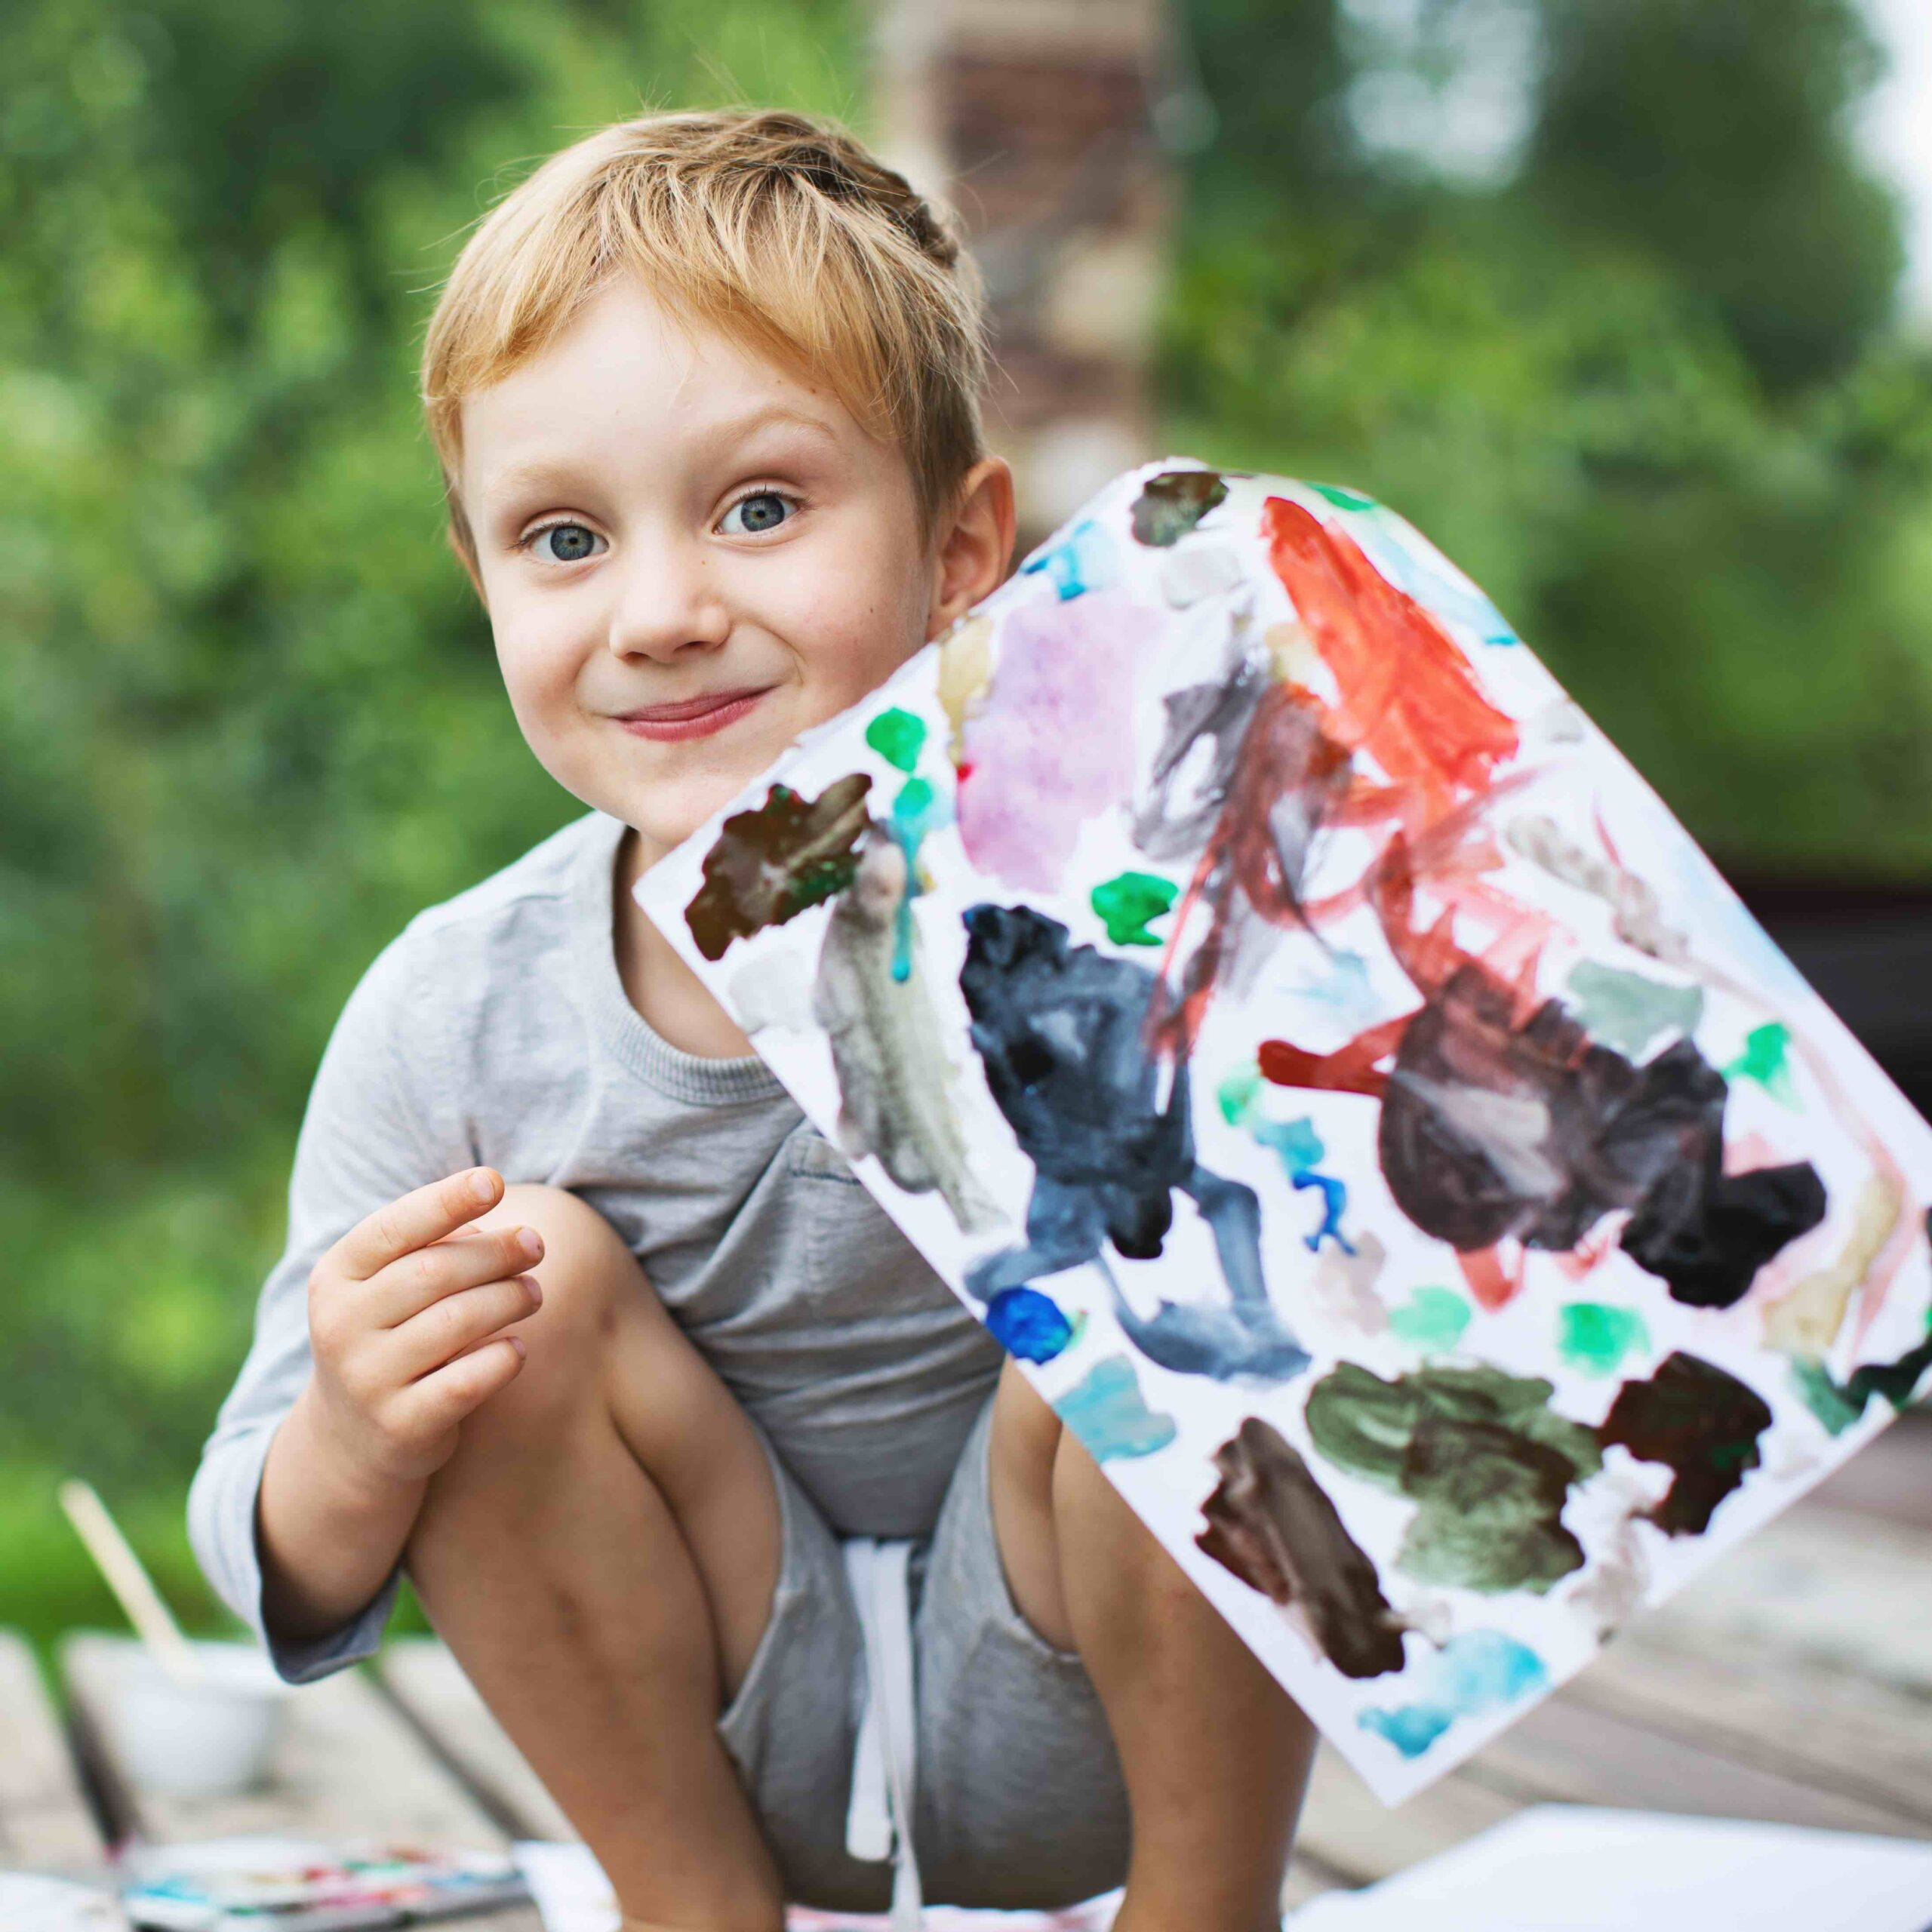 Create Art Studio Summer Camp for kids aged 6 to 10 art and outdoor fun camp